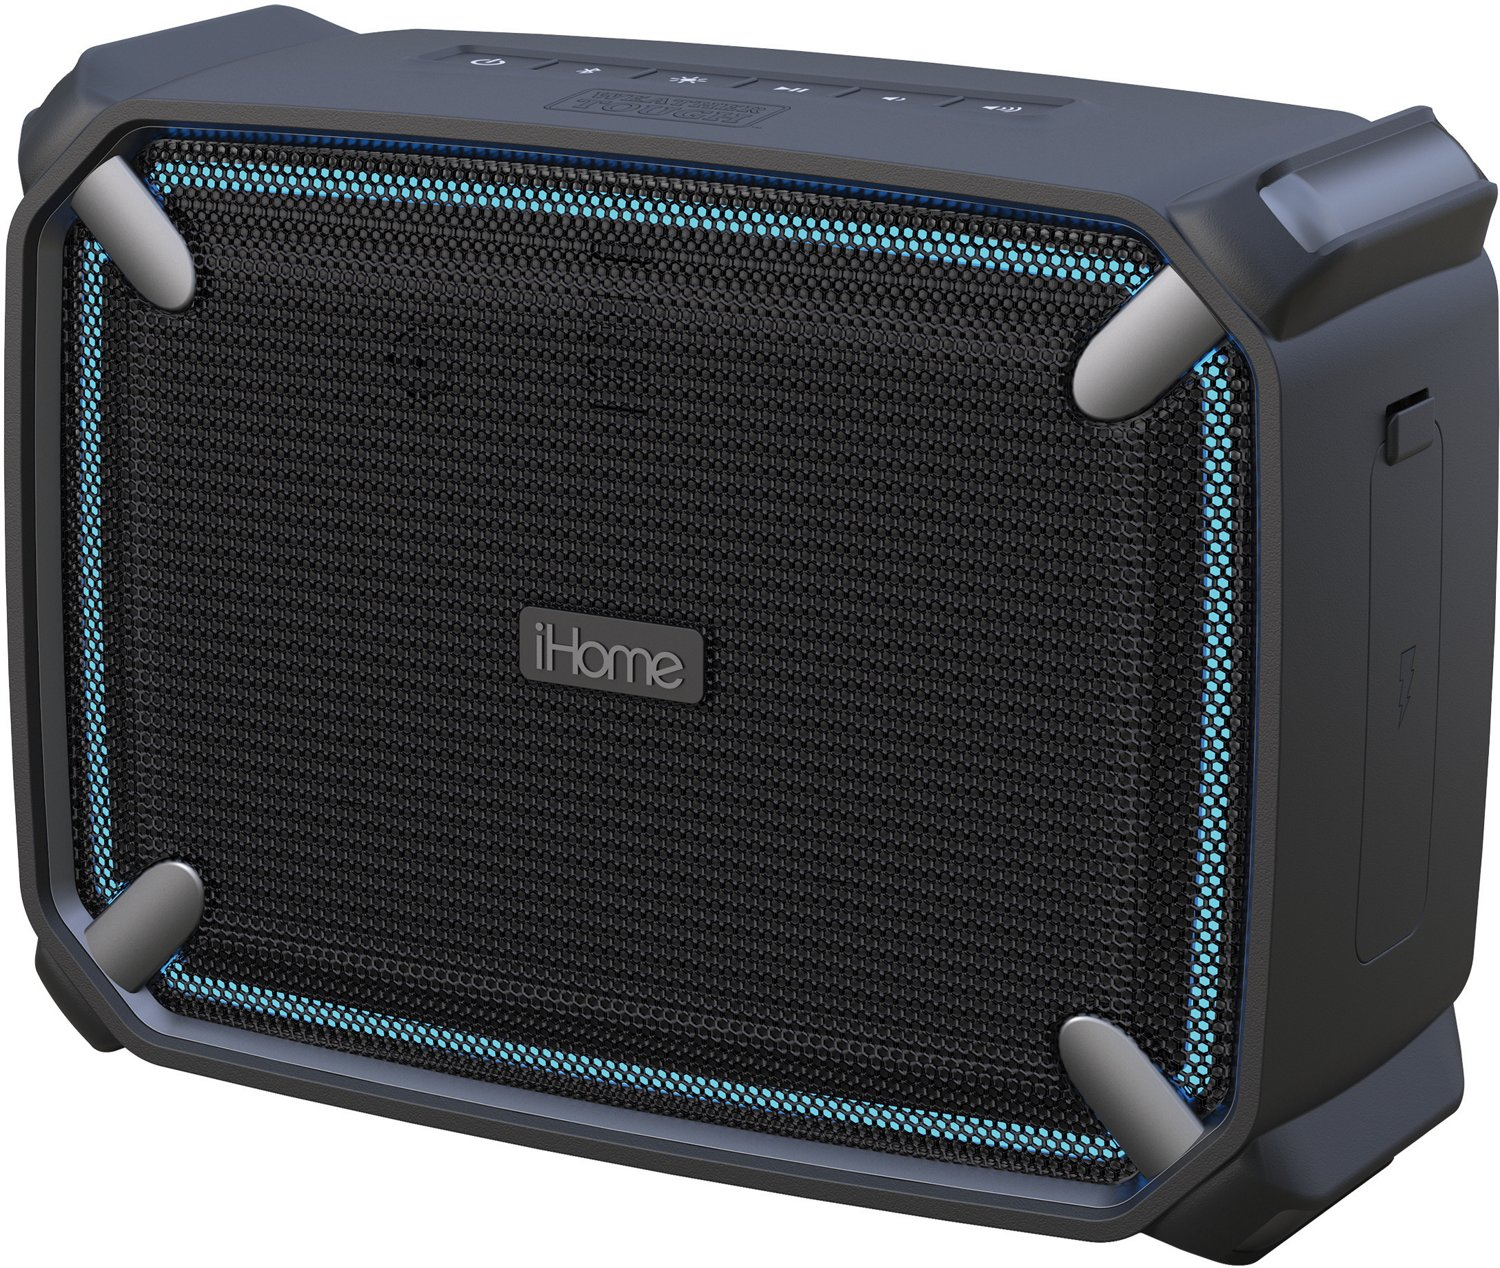 Speakers Bluetooth Wireless Portable Speaker Jbl Charge Mini 2 Plus Smartphone Aux Display Product Reviews For Ihome Stereo With Accent Light